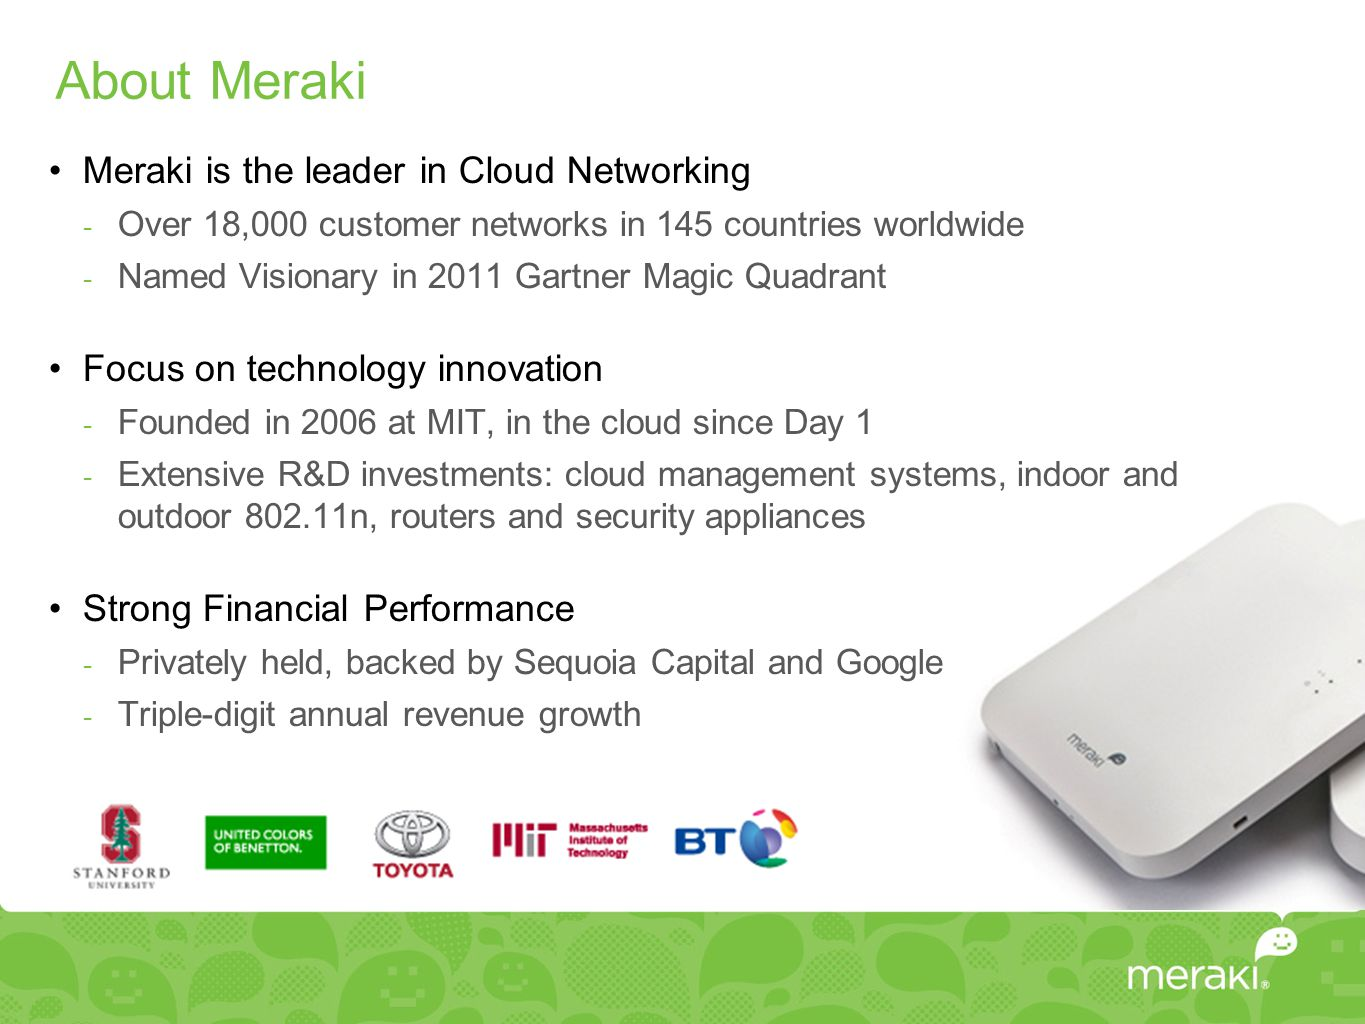 About Meraki Meraki is the leader in Cloud Networking  Over 18,000 customer networks in 145 countries worldwide  Named Visionary in 2011 Gartner Magic Quadrant Focus on technology innovation  Founded in 2006 at MIT, in the cloud since Day 1  Extensive R&D investments: cloud management systems, indoor and outdoor 802.11n, routers and security appliances Strong Financial Performance  Privately held, backed by Sequoia Capital and Google  Triple-digit annual revenue growth